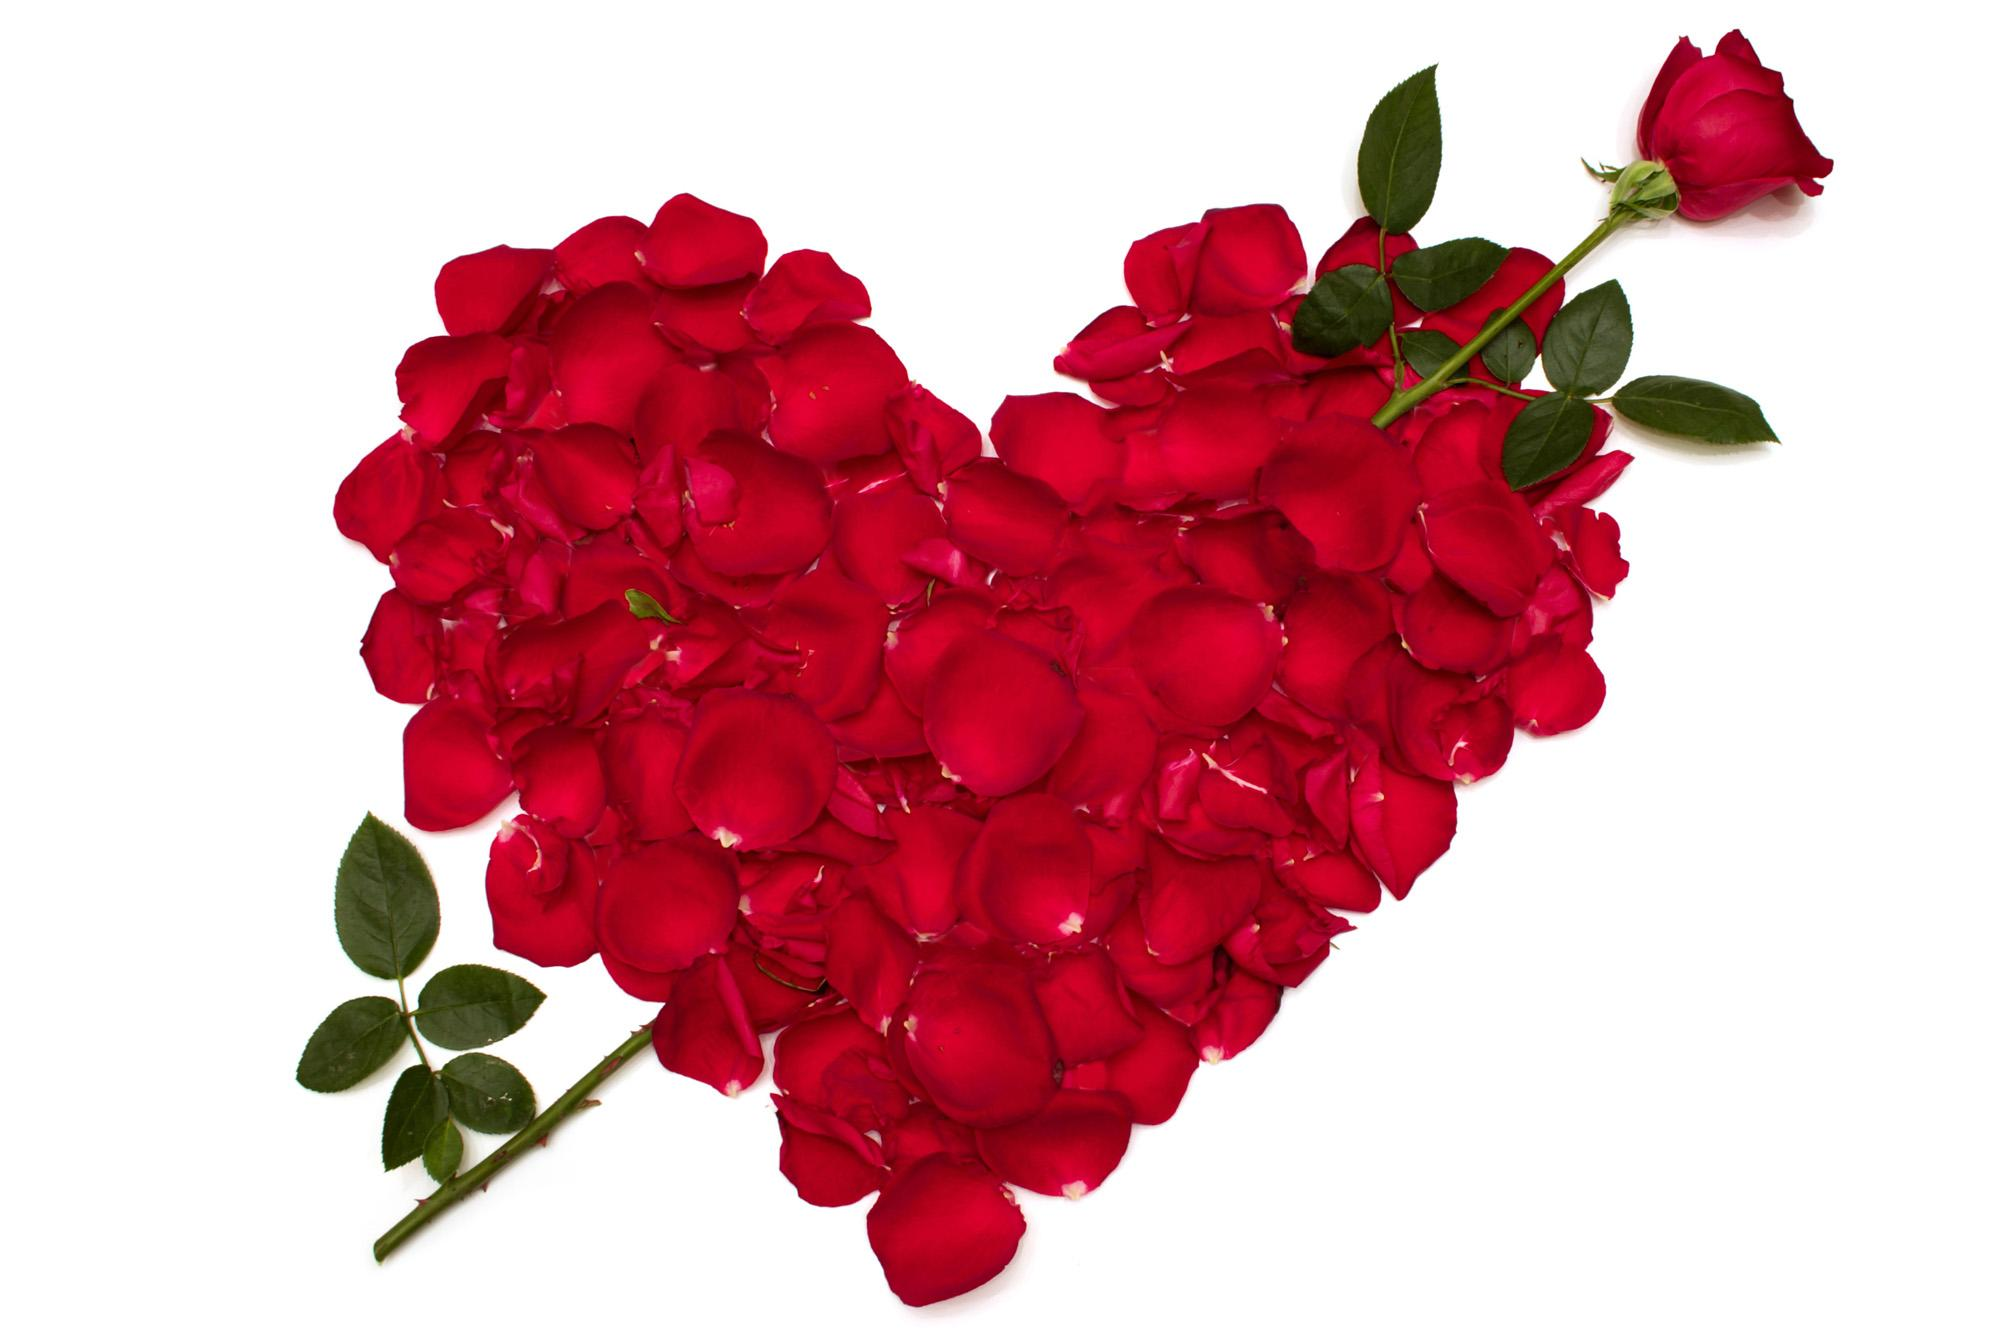 ... Love Roses Heart Red Petals Flowers Wallpaper 2000×1333